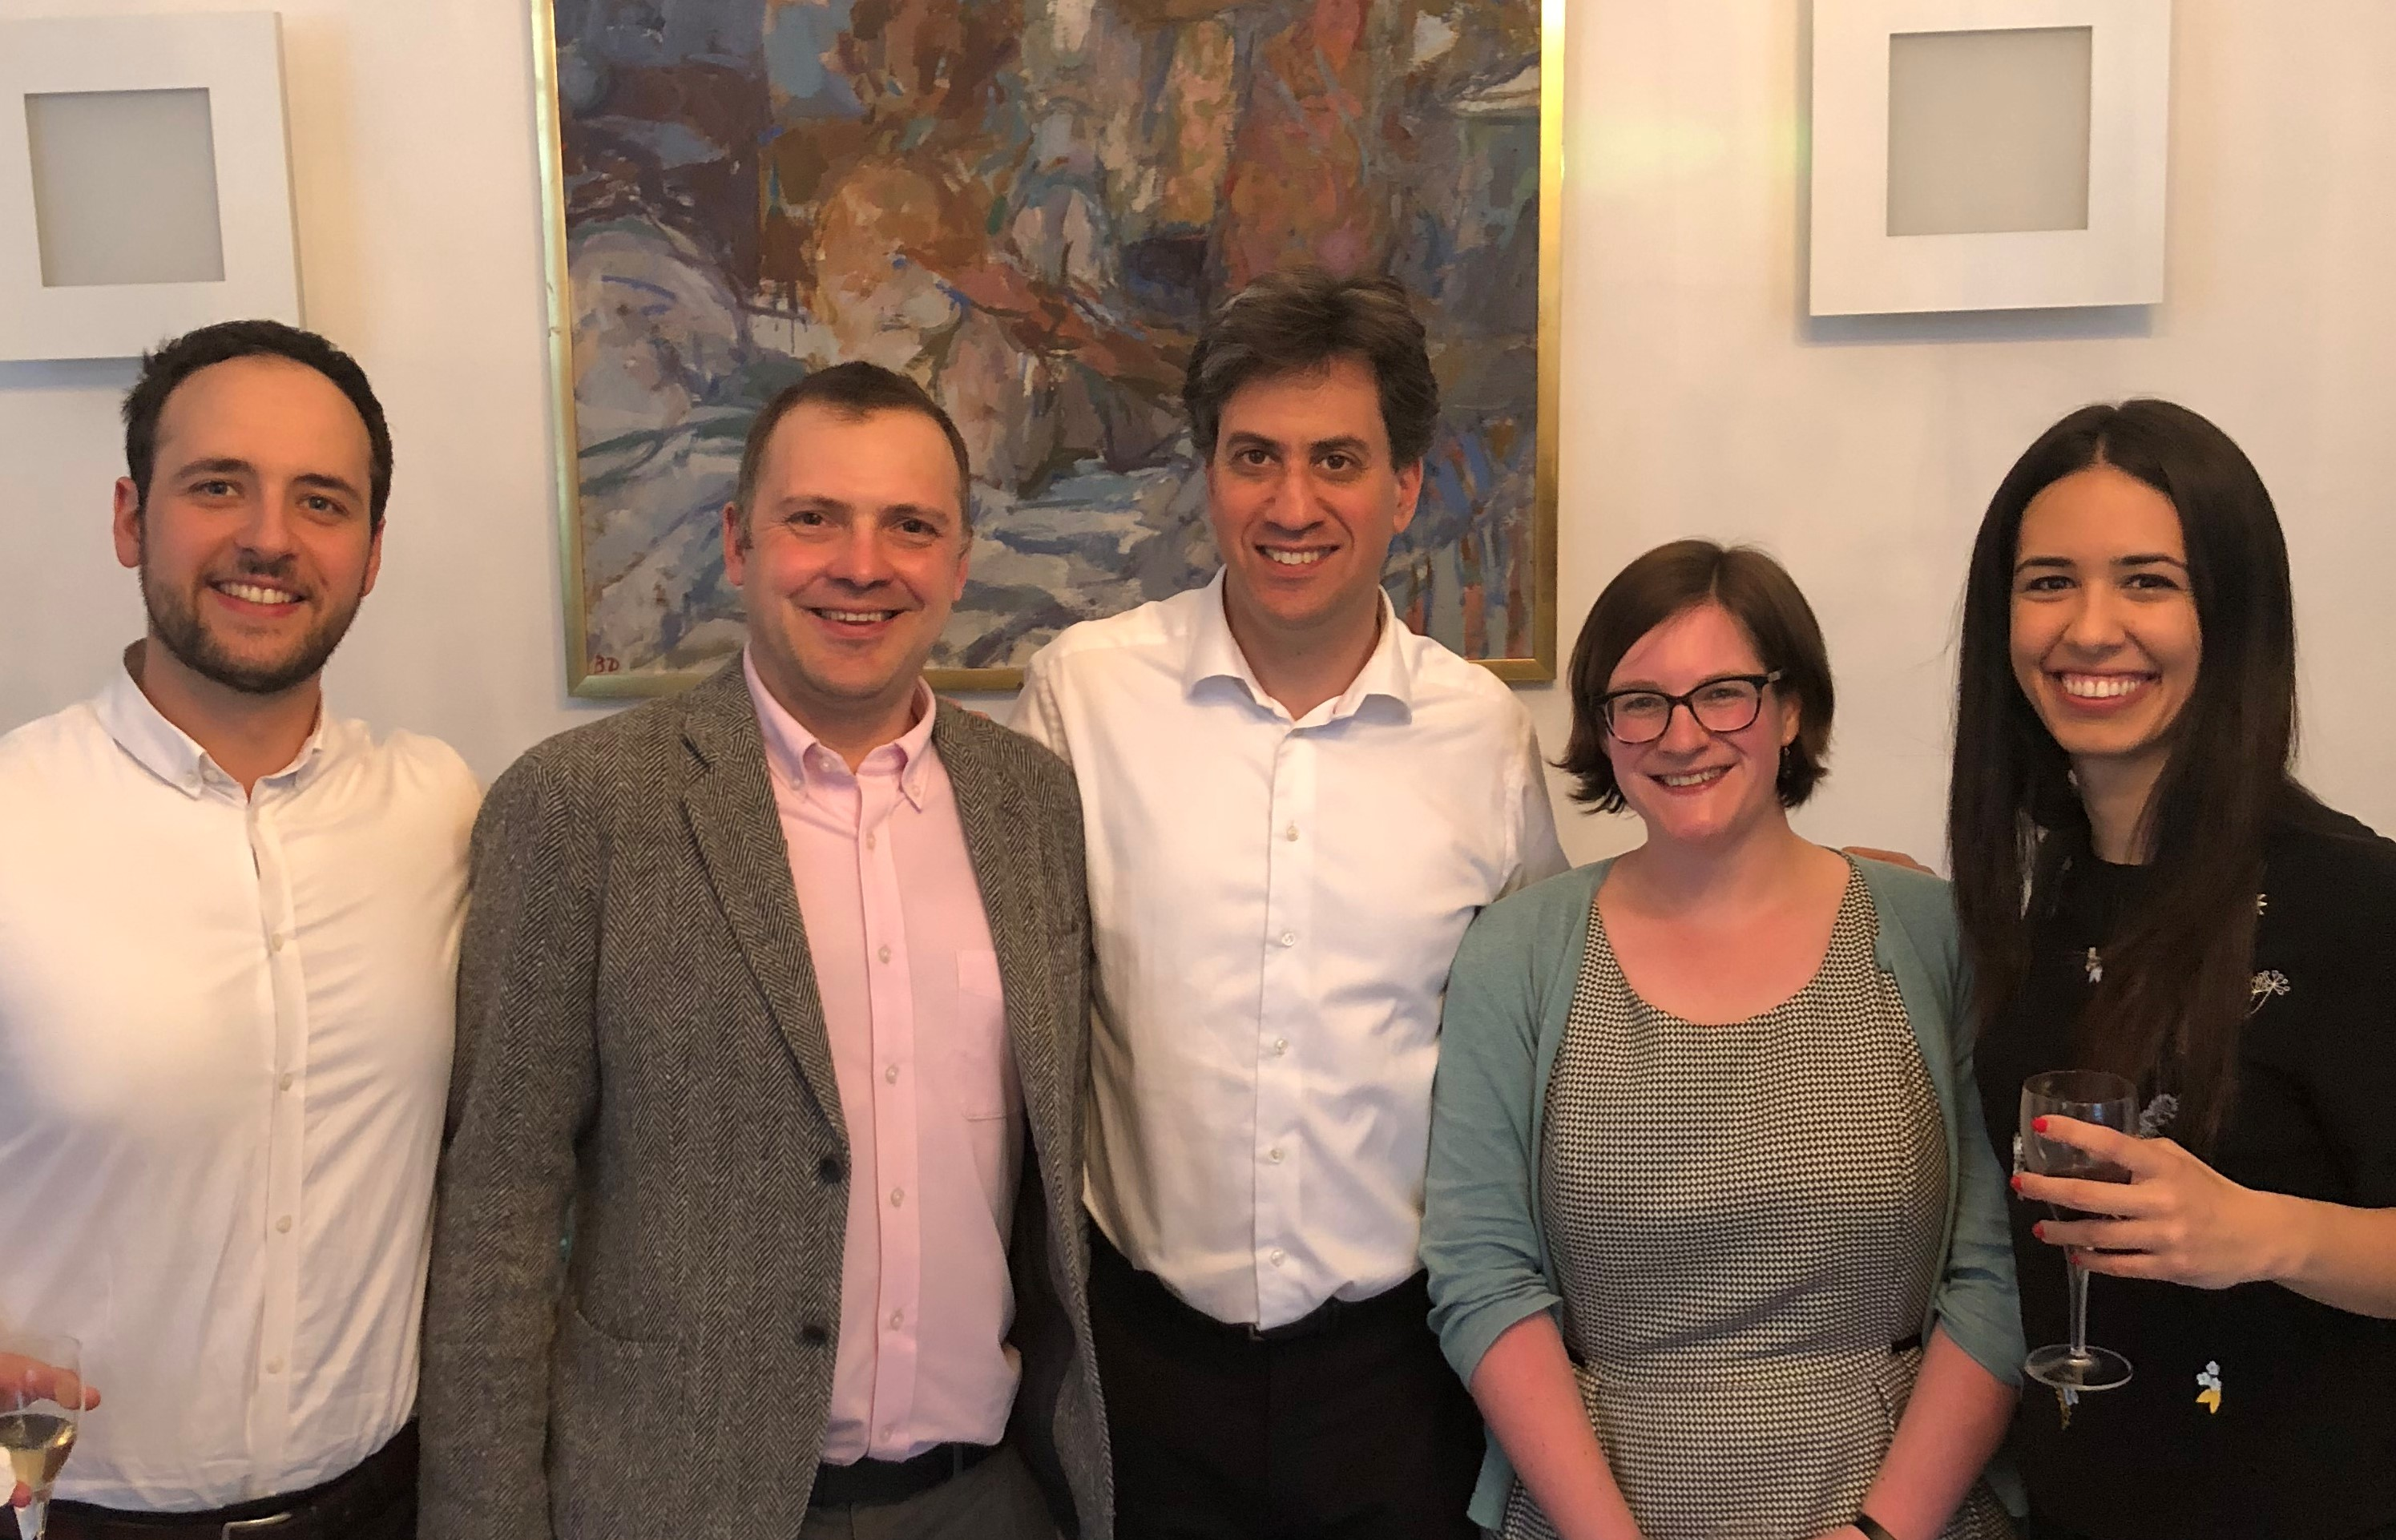 Members of the WEALTHPOL team and Ed Miliband at the Wealth Inequality Workshop in April 2018